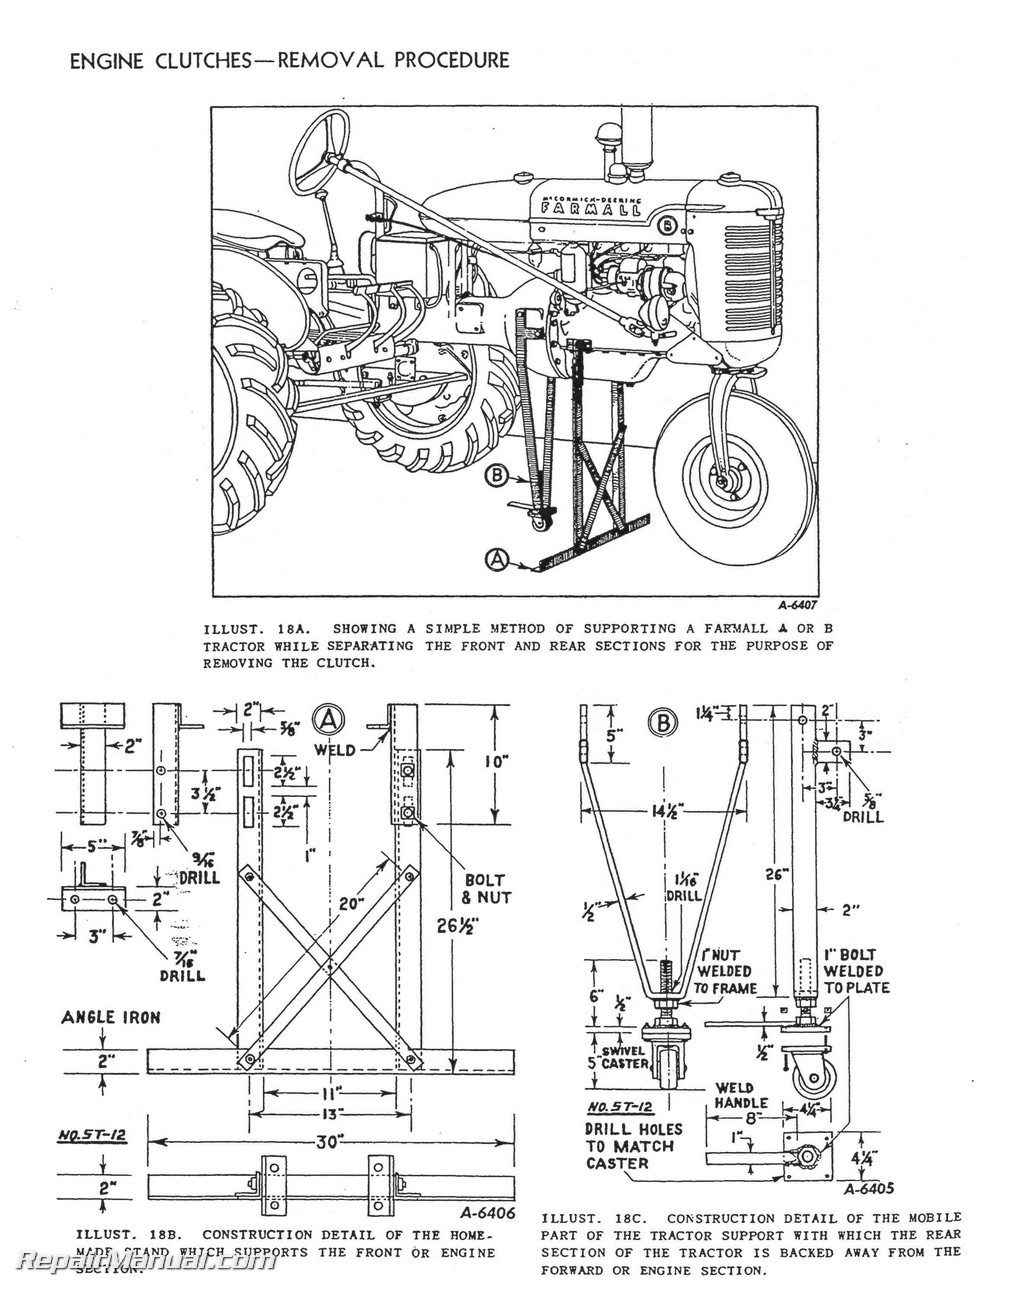 international harvester farmall tractor engine clutch transmission service manual